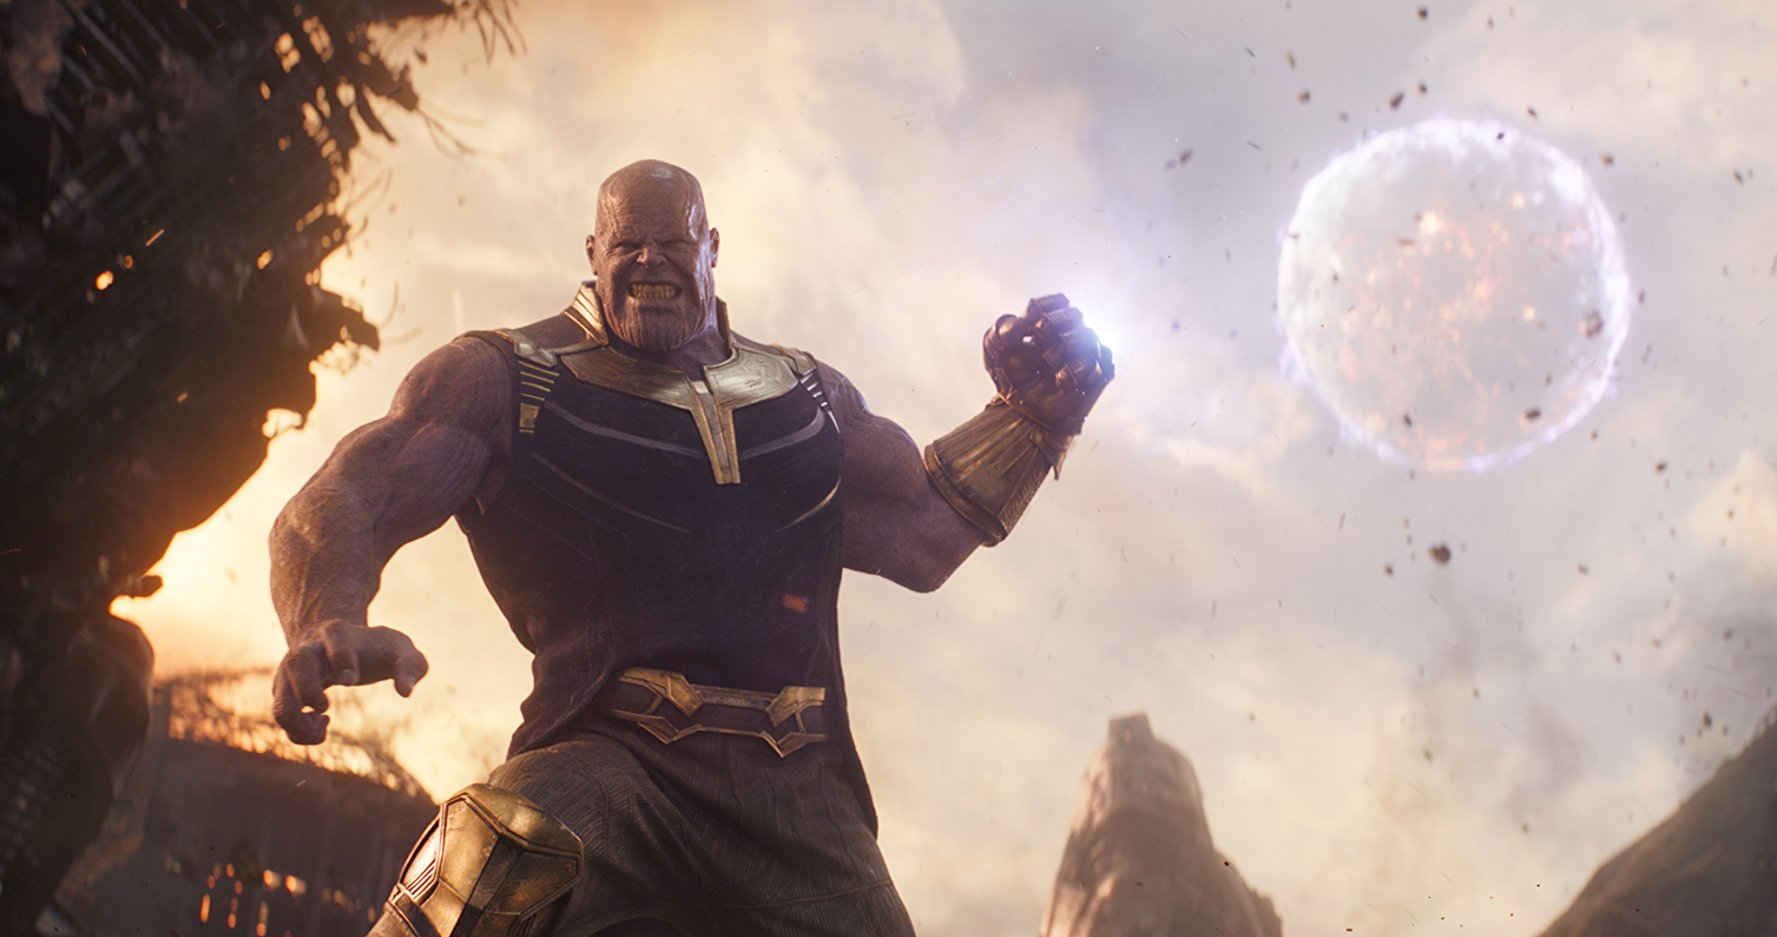 Avengers: Infinity War surges past Black Panther's advance ticket sales